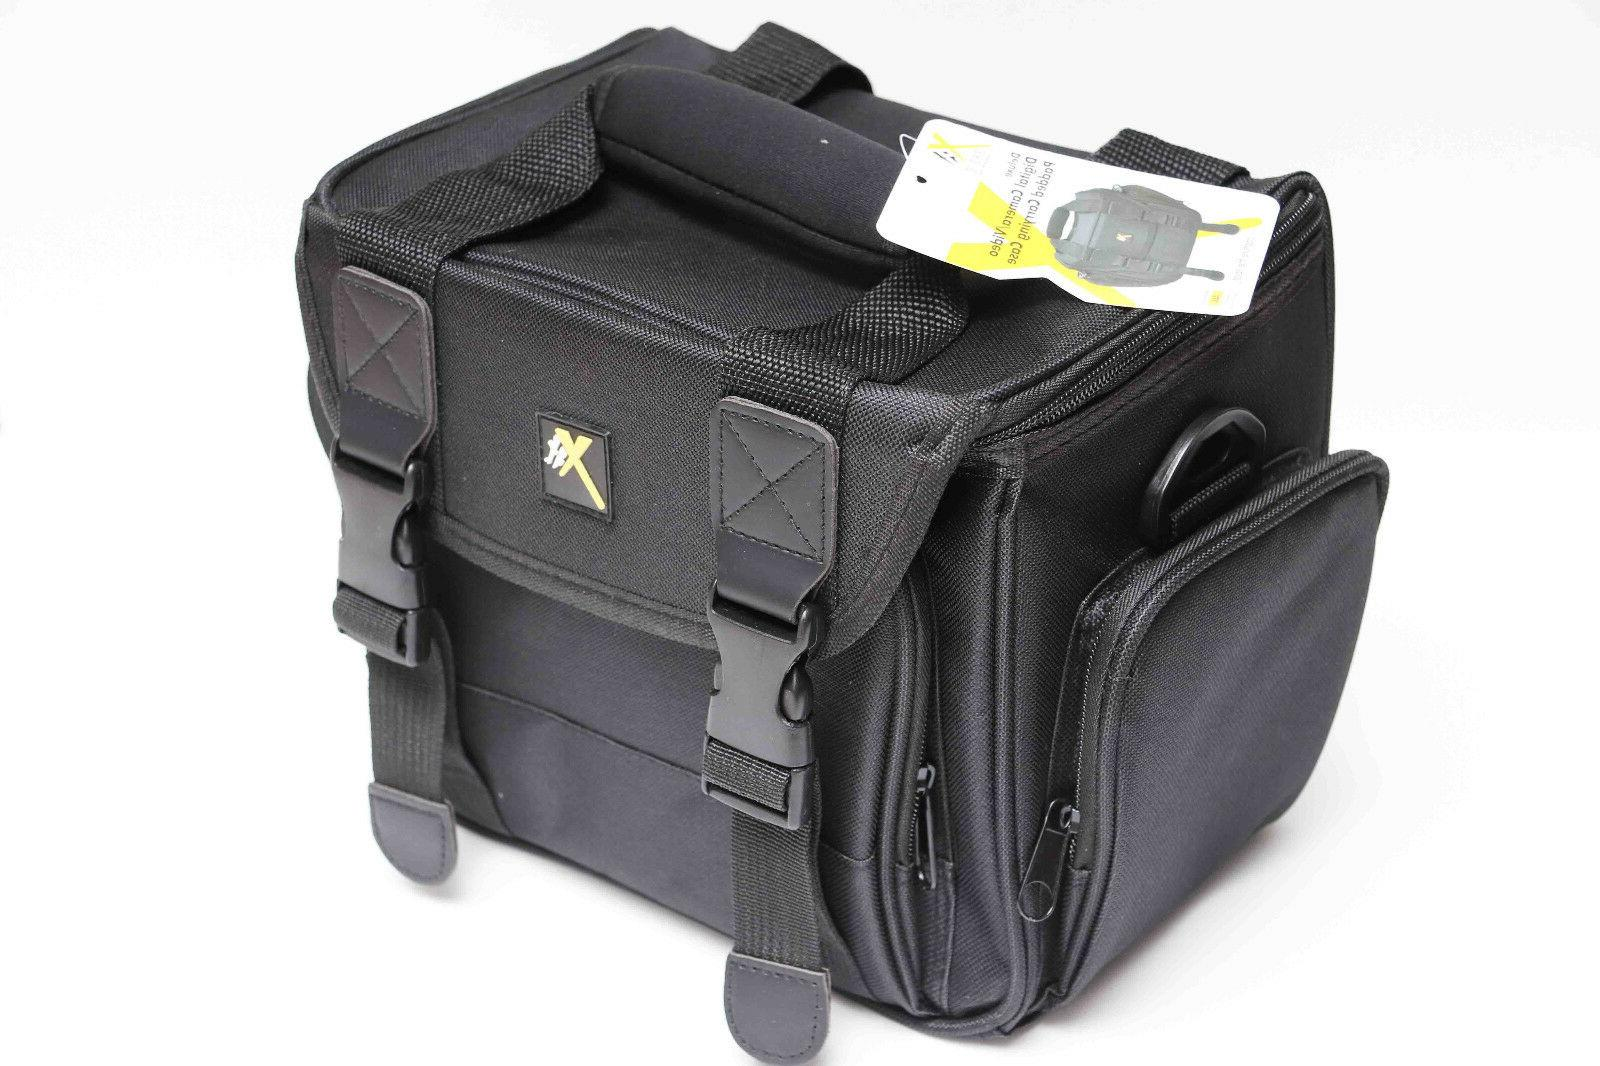 xtcc4 deluxe digital camera video padded carrying